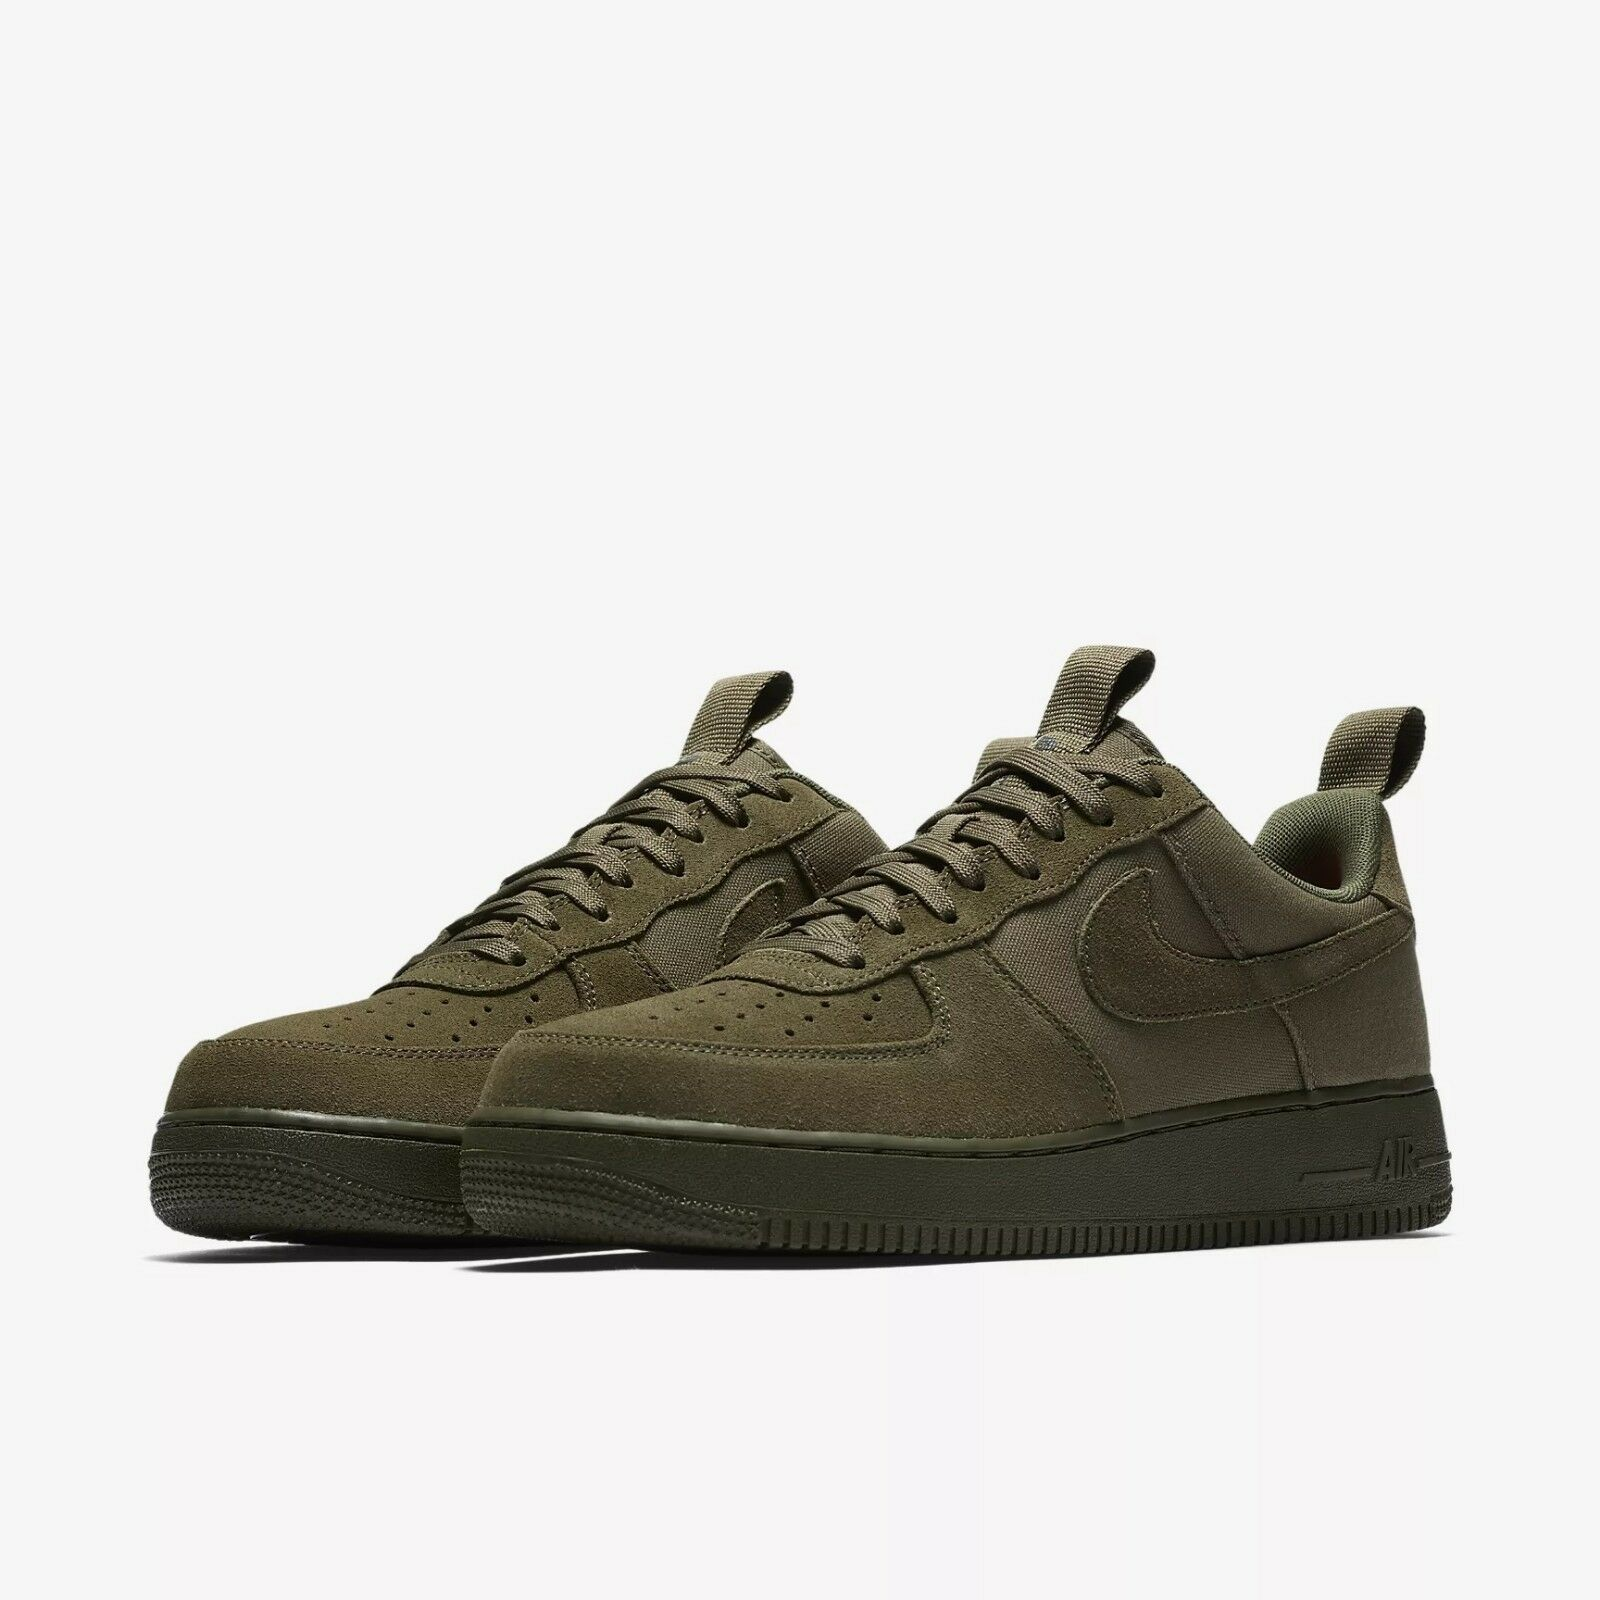 579927-200 Nike Air Obliger 1 '07 faible Canvas Lifestyle Olive/Sequoia Szs 8-12 NIB